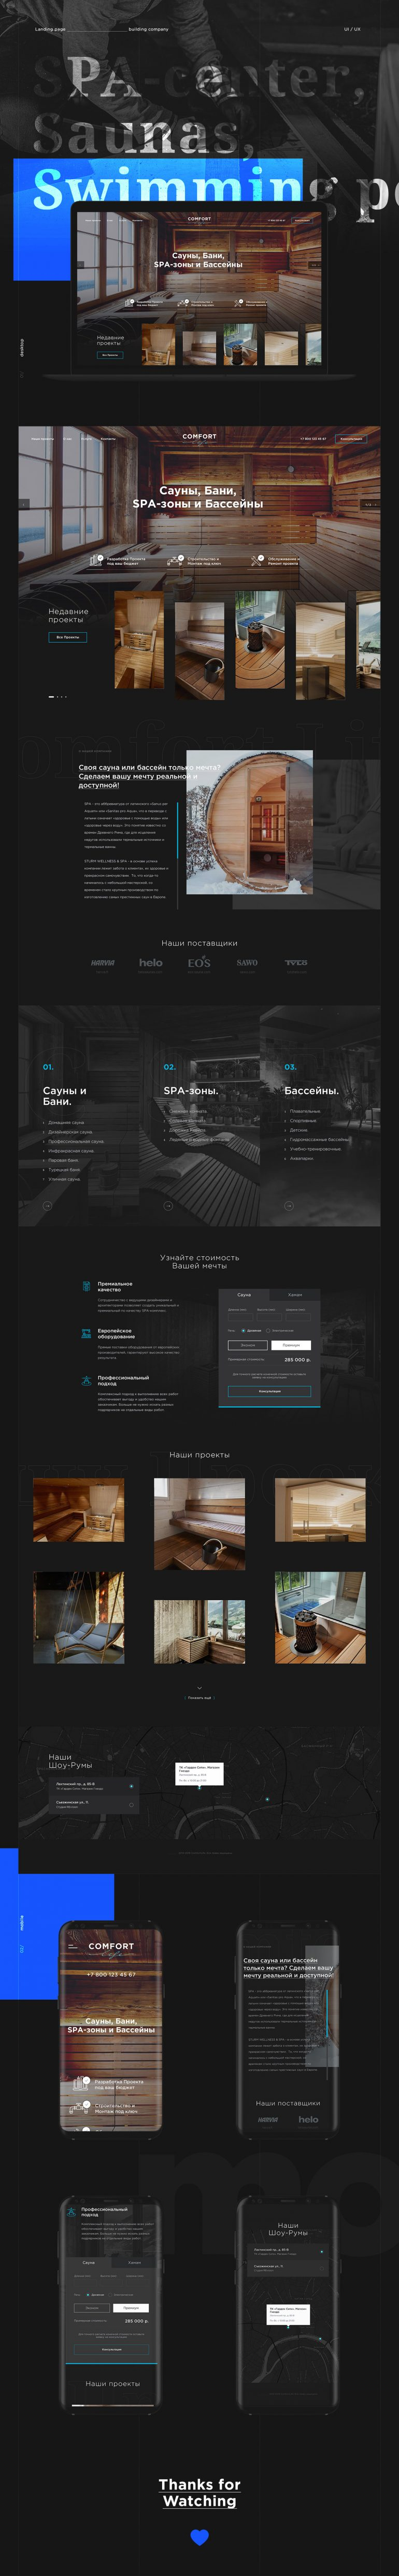 Landing page for Comfort Life